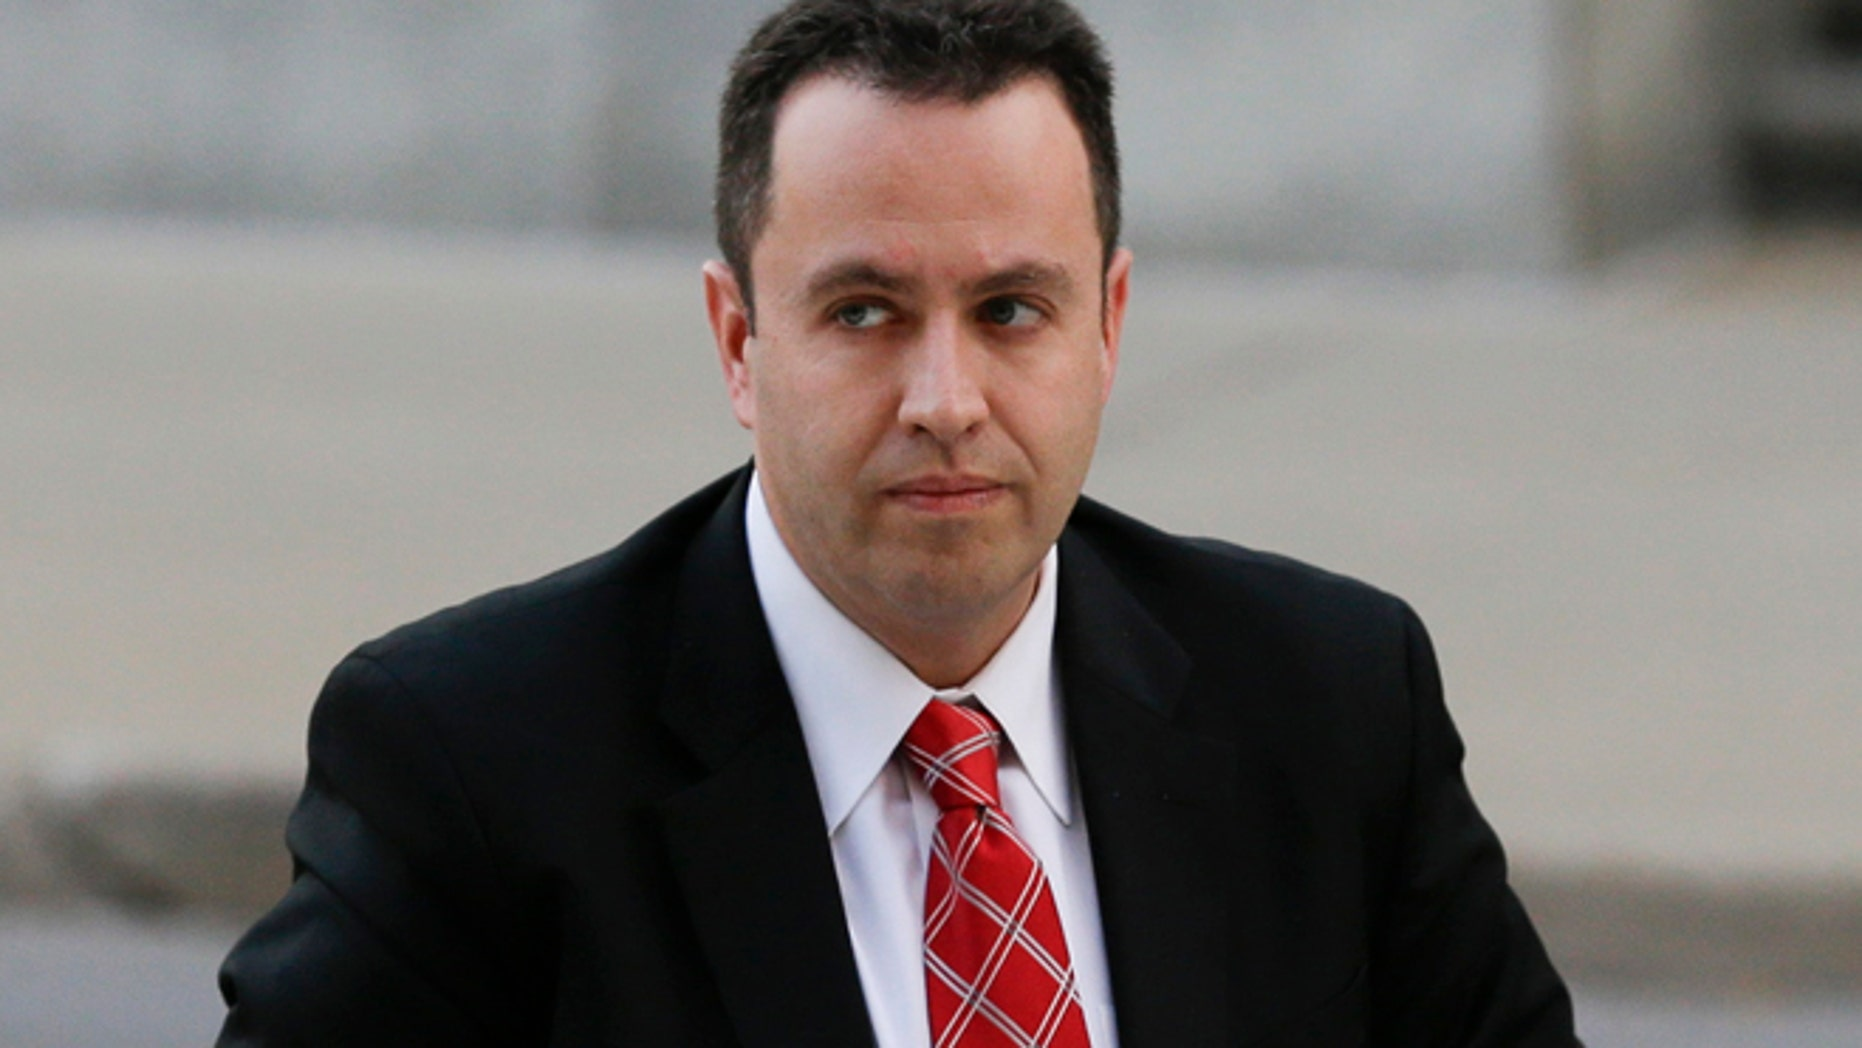 Nov. 19: Former Subway pitchman Jared Fogle arrives at the federal courthouse in Indianapolis